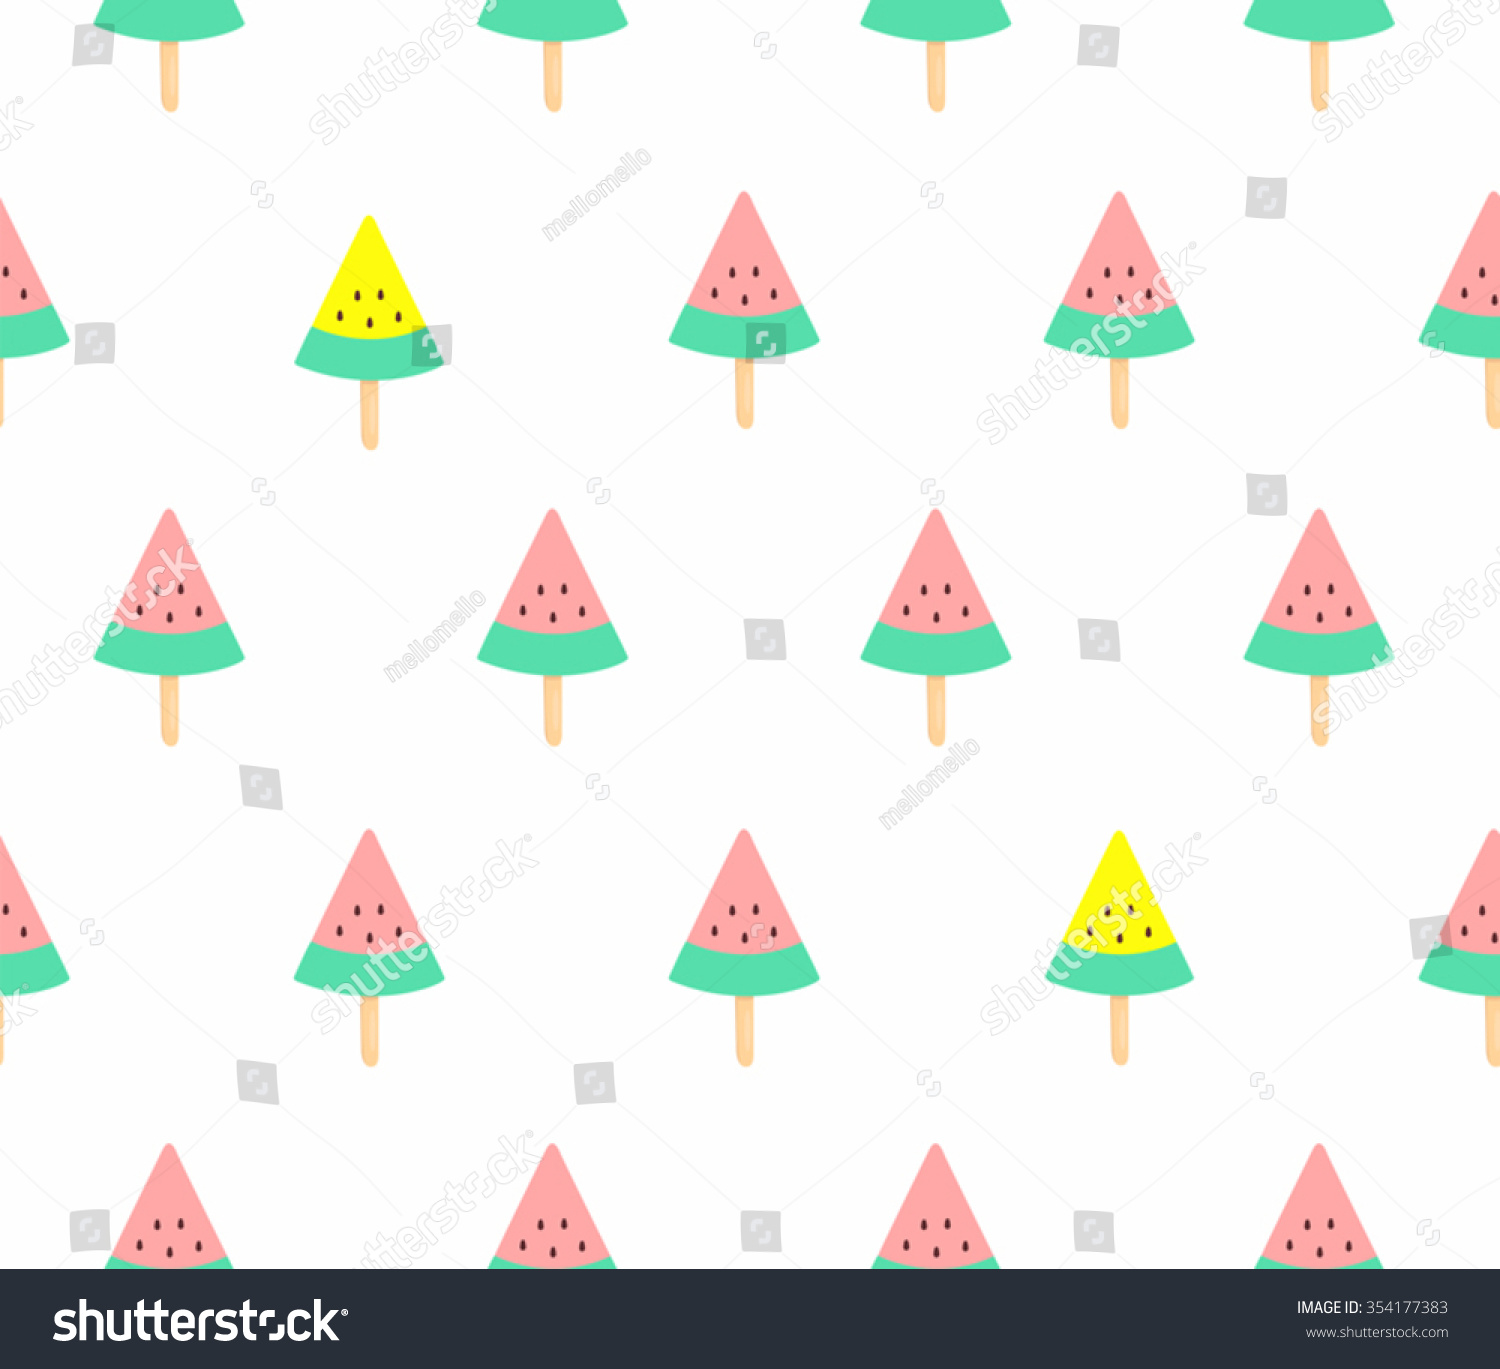 Cute Colorful Ice Cream Seamless Pattern Background: Cute Pink Yellow Watermelon Ice Cream Vectores En Stock